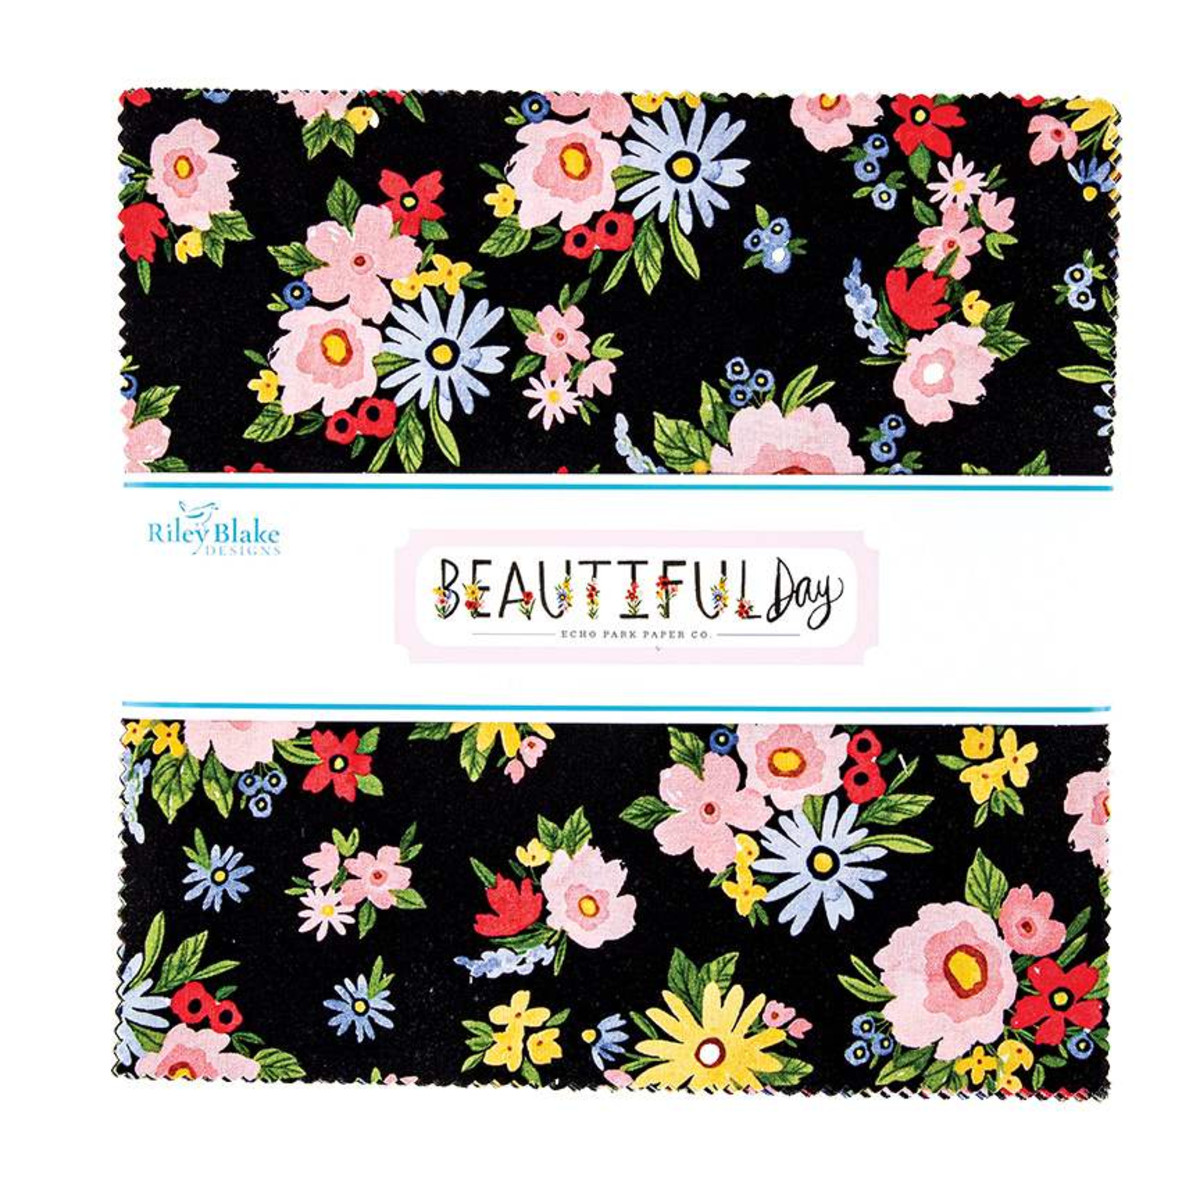 Riley Blake Layer Cake - Beautiful Day by Echo Park Paper Co